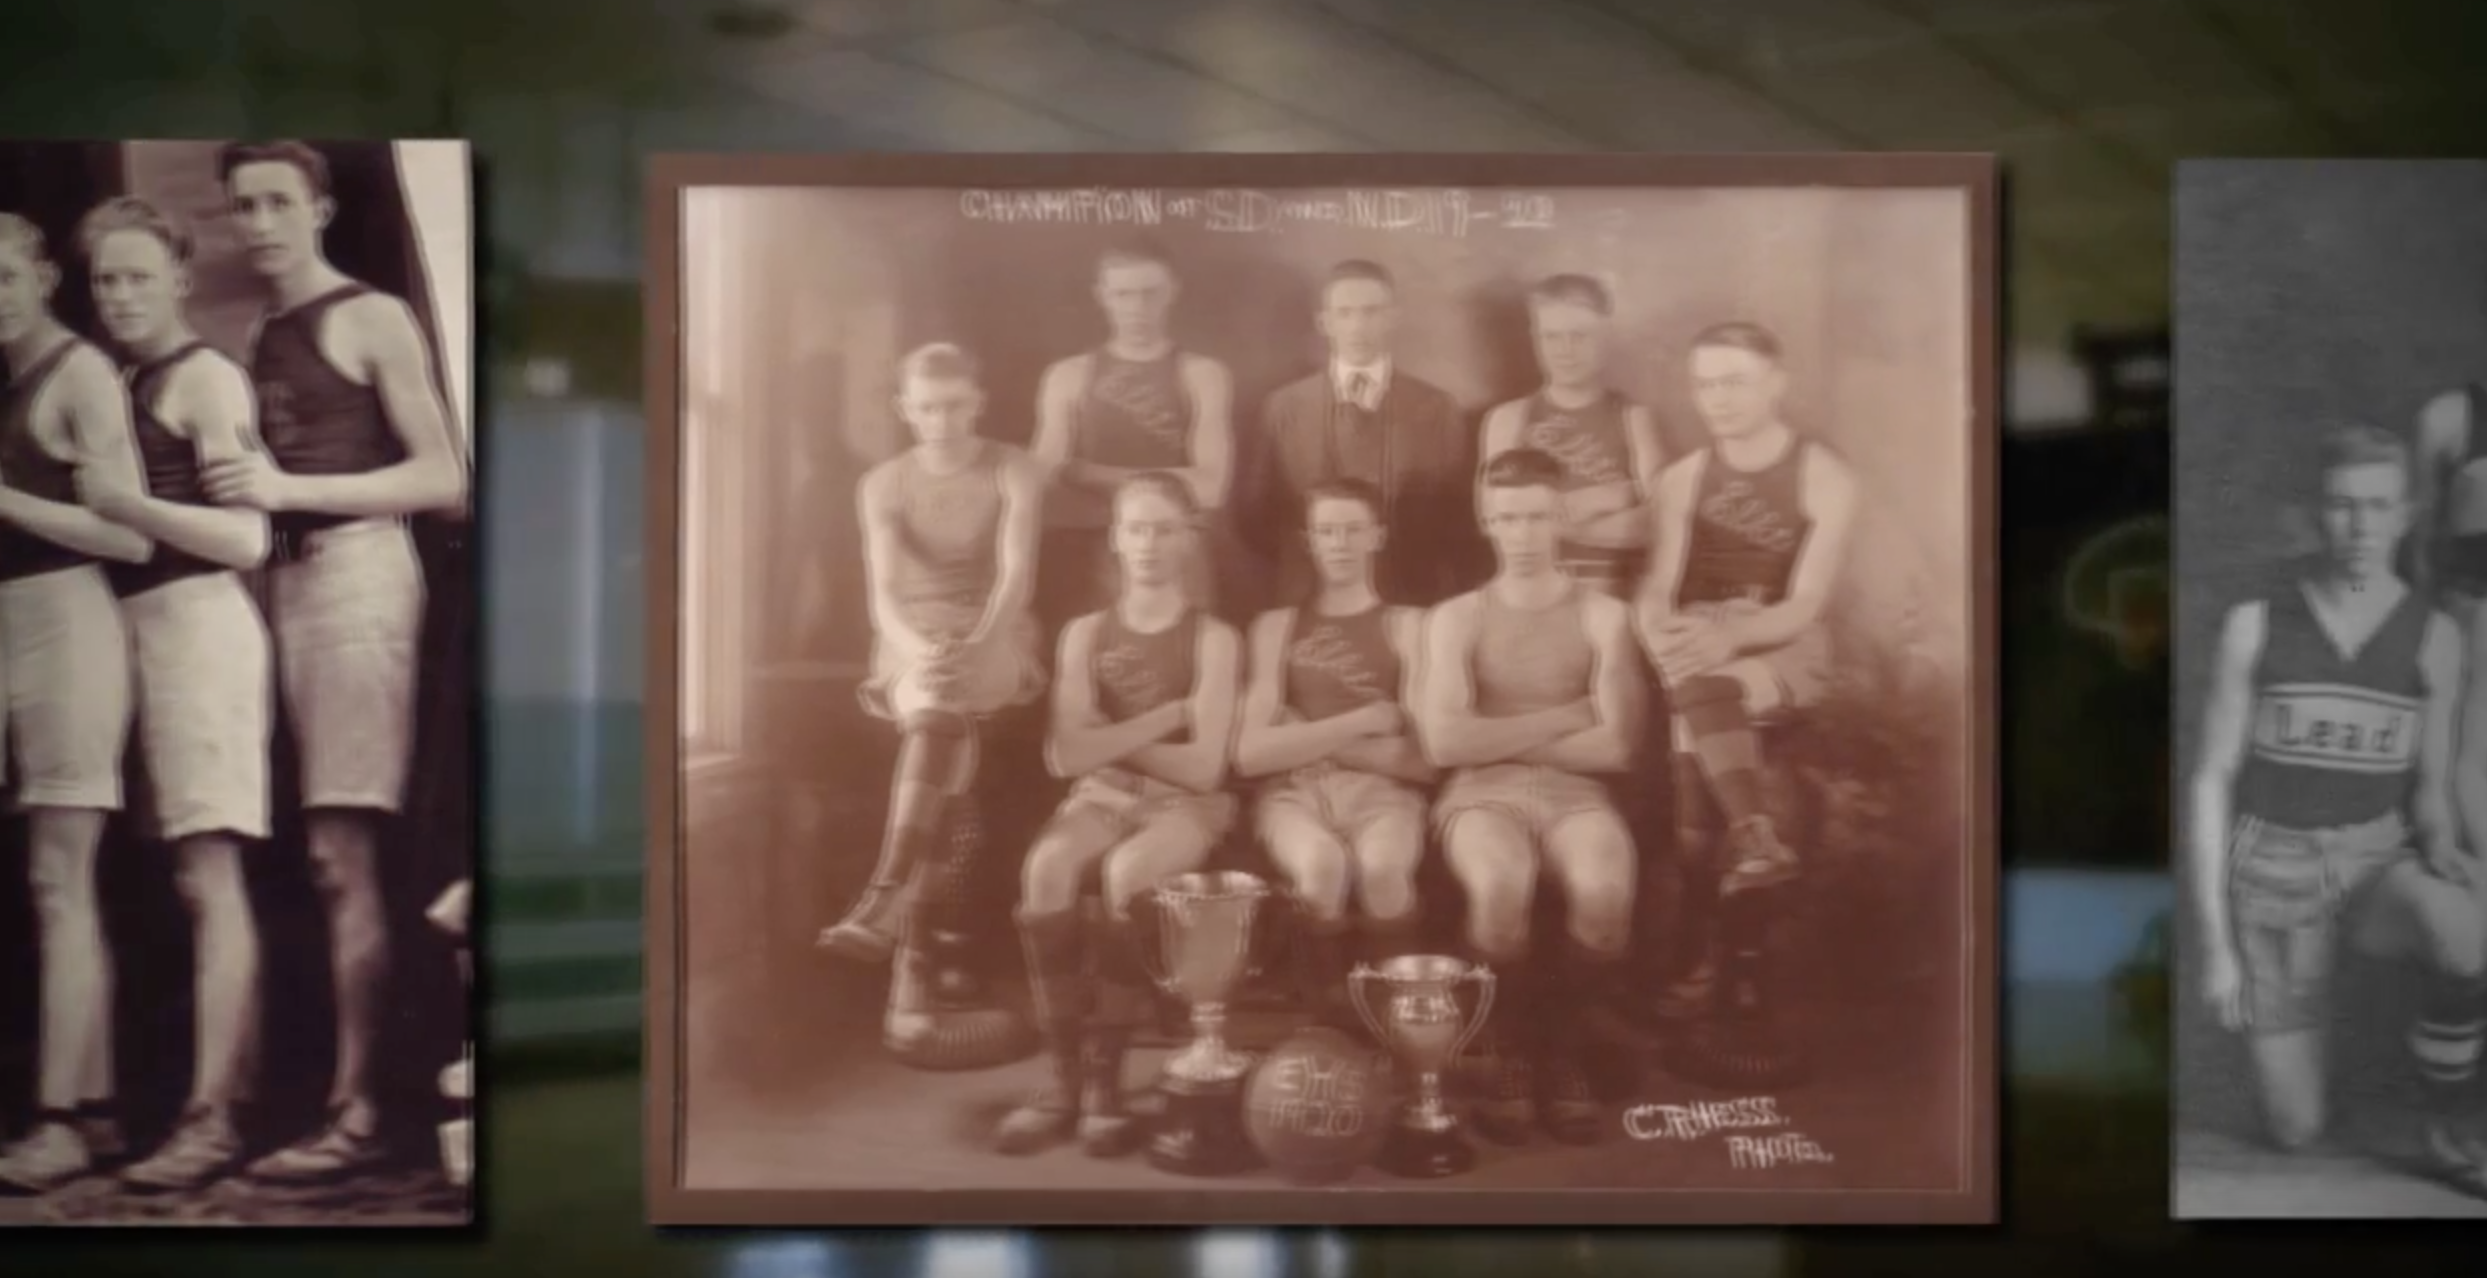 Old high school basketball championship photo